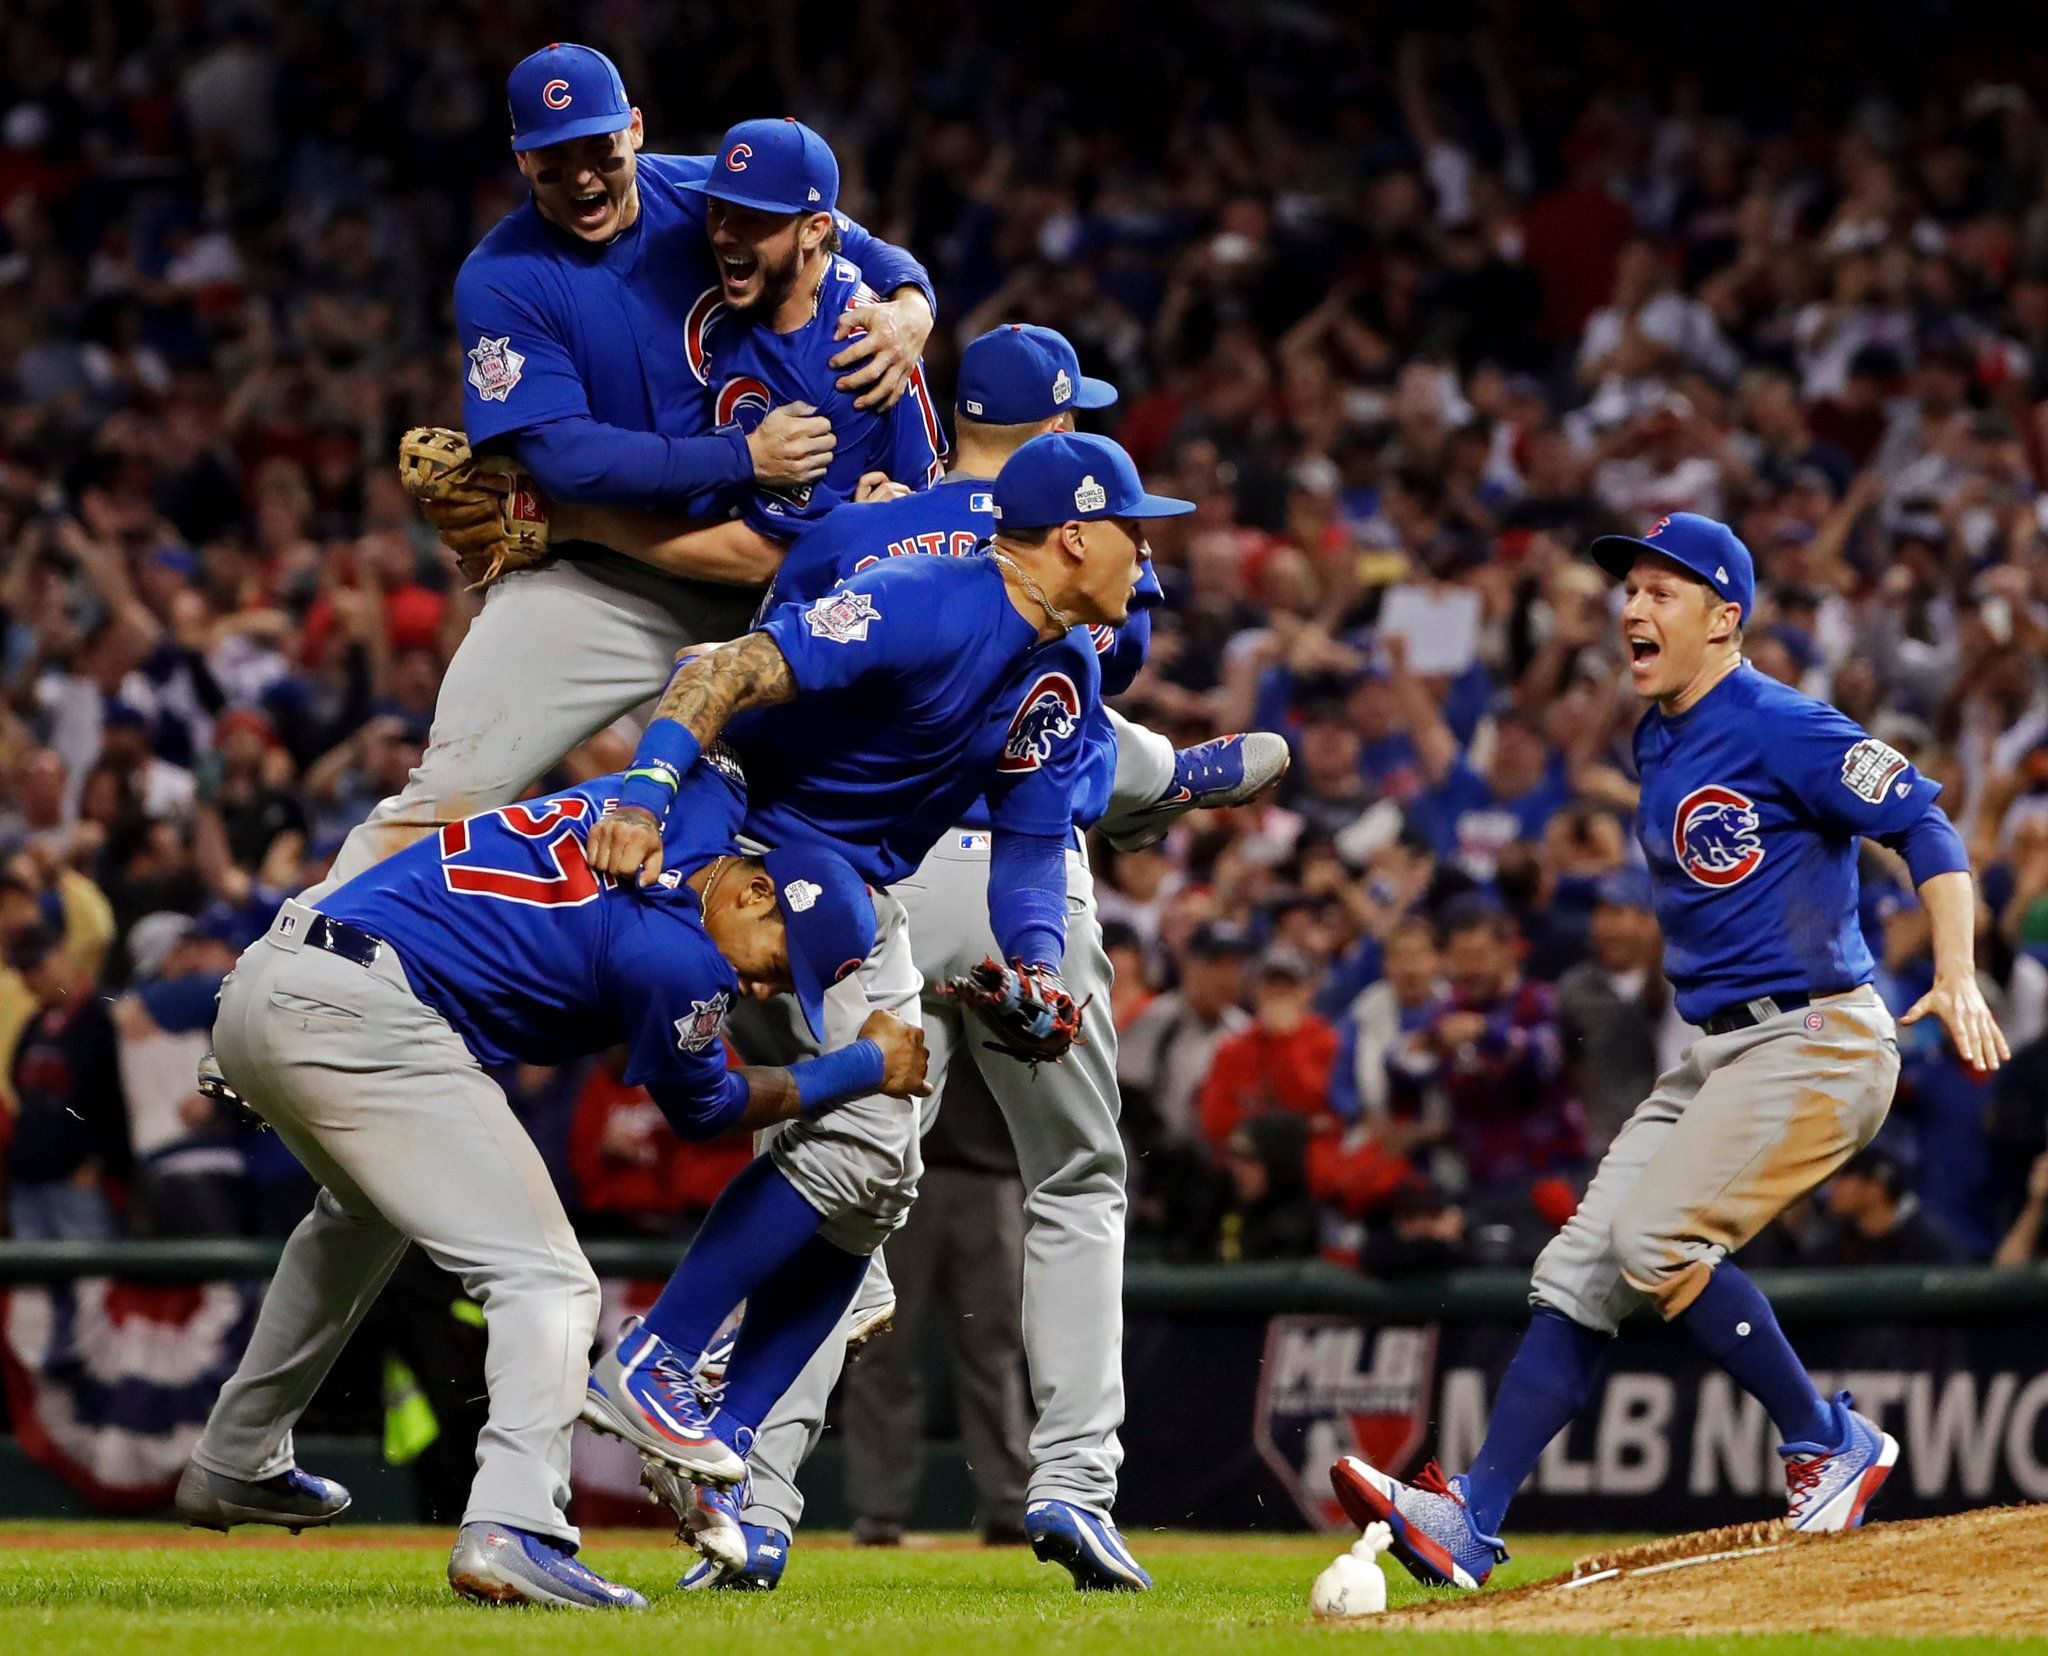 Cubs End 108 Year Wait For World Series Title After A Little More Torment Chicago Cubs Baseball Chicago Cubs World Series Chicago Sports Teams